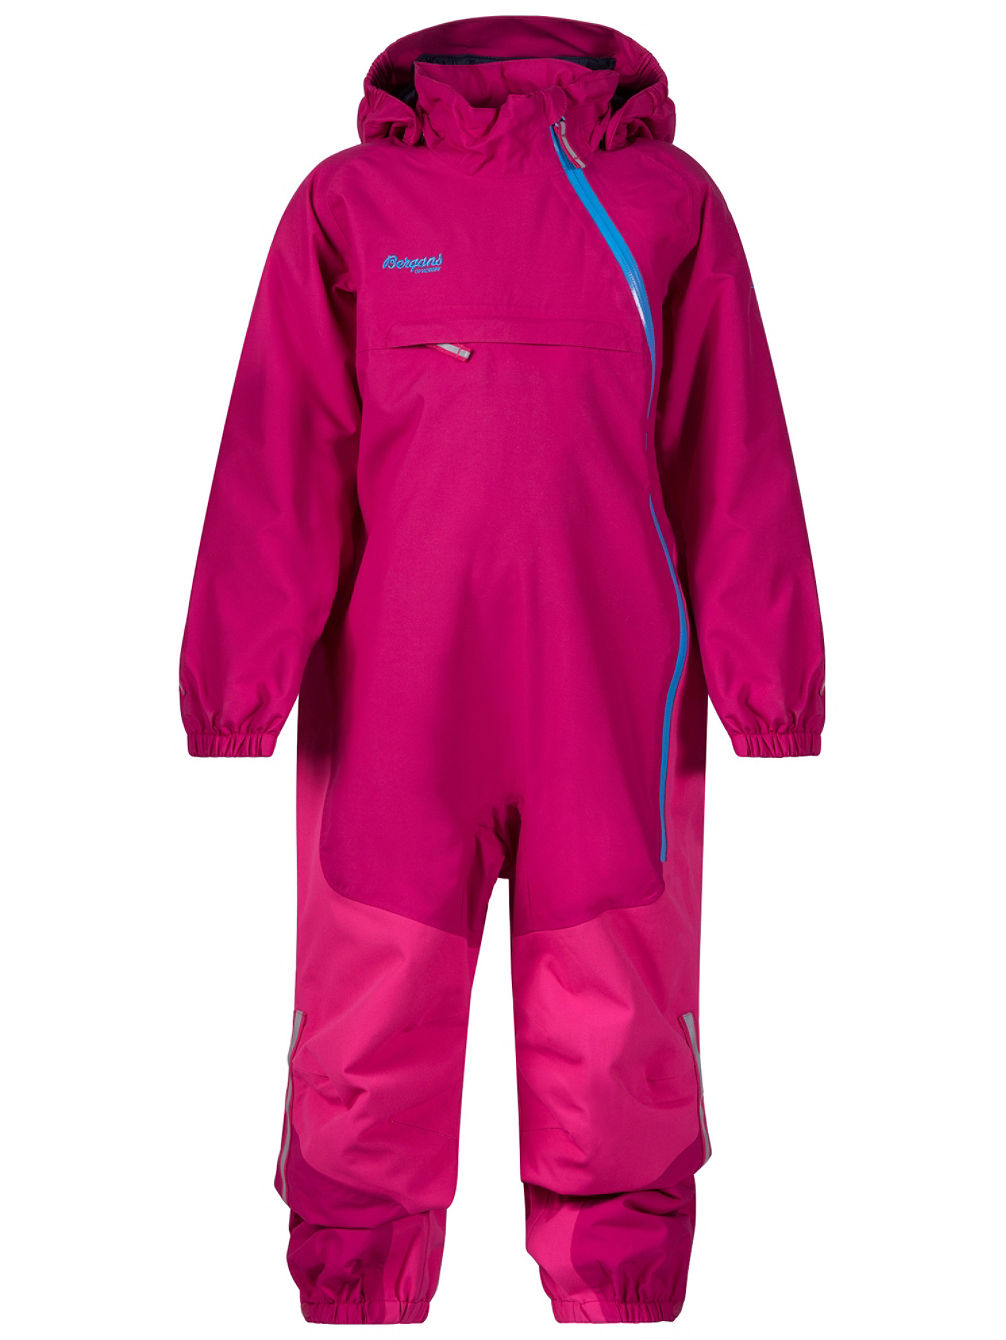 Snotind Insulated Kids Coverall